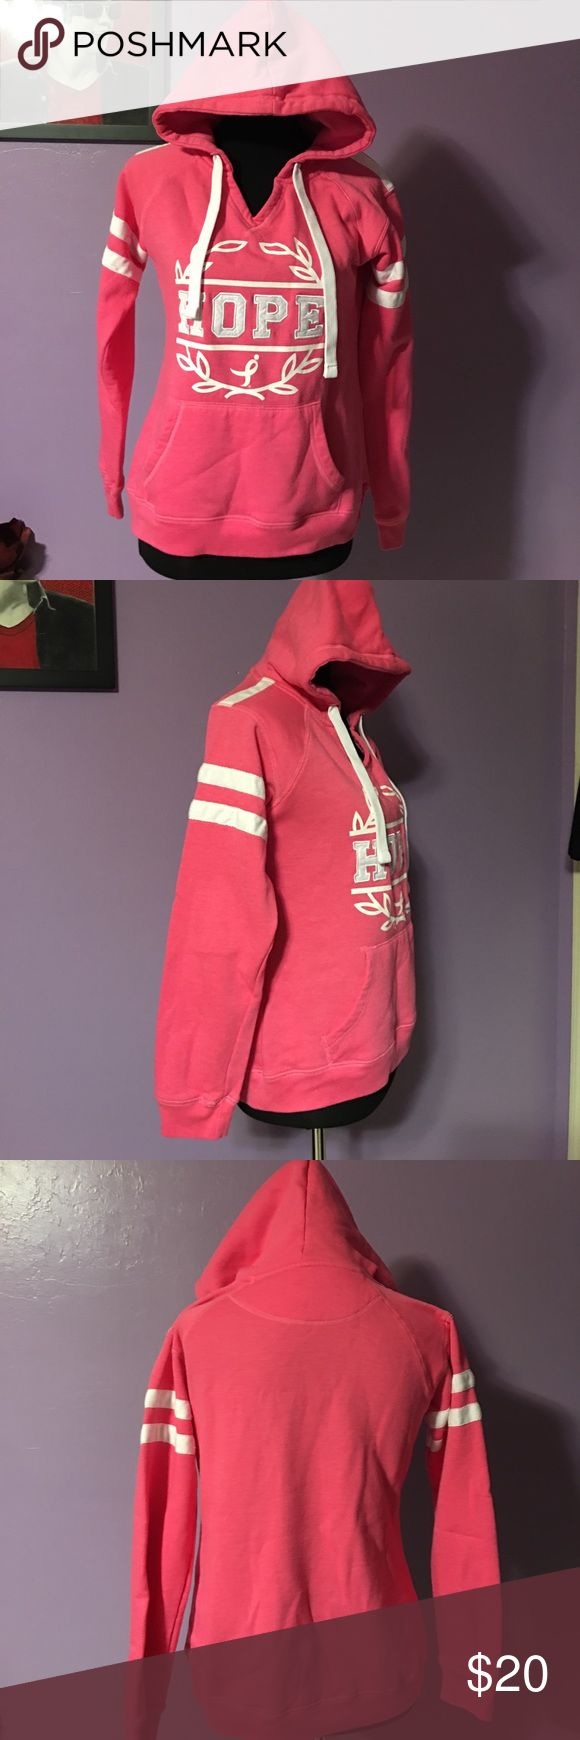 HOPE sweatshirt size small Susan G Komen. Pre owned in great condition. Size small. See pics for details. Breast cancer awareness! Susan G Komen Tops Sweatshirts & Hoodies